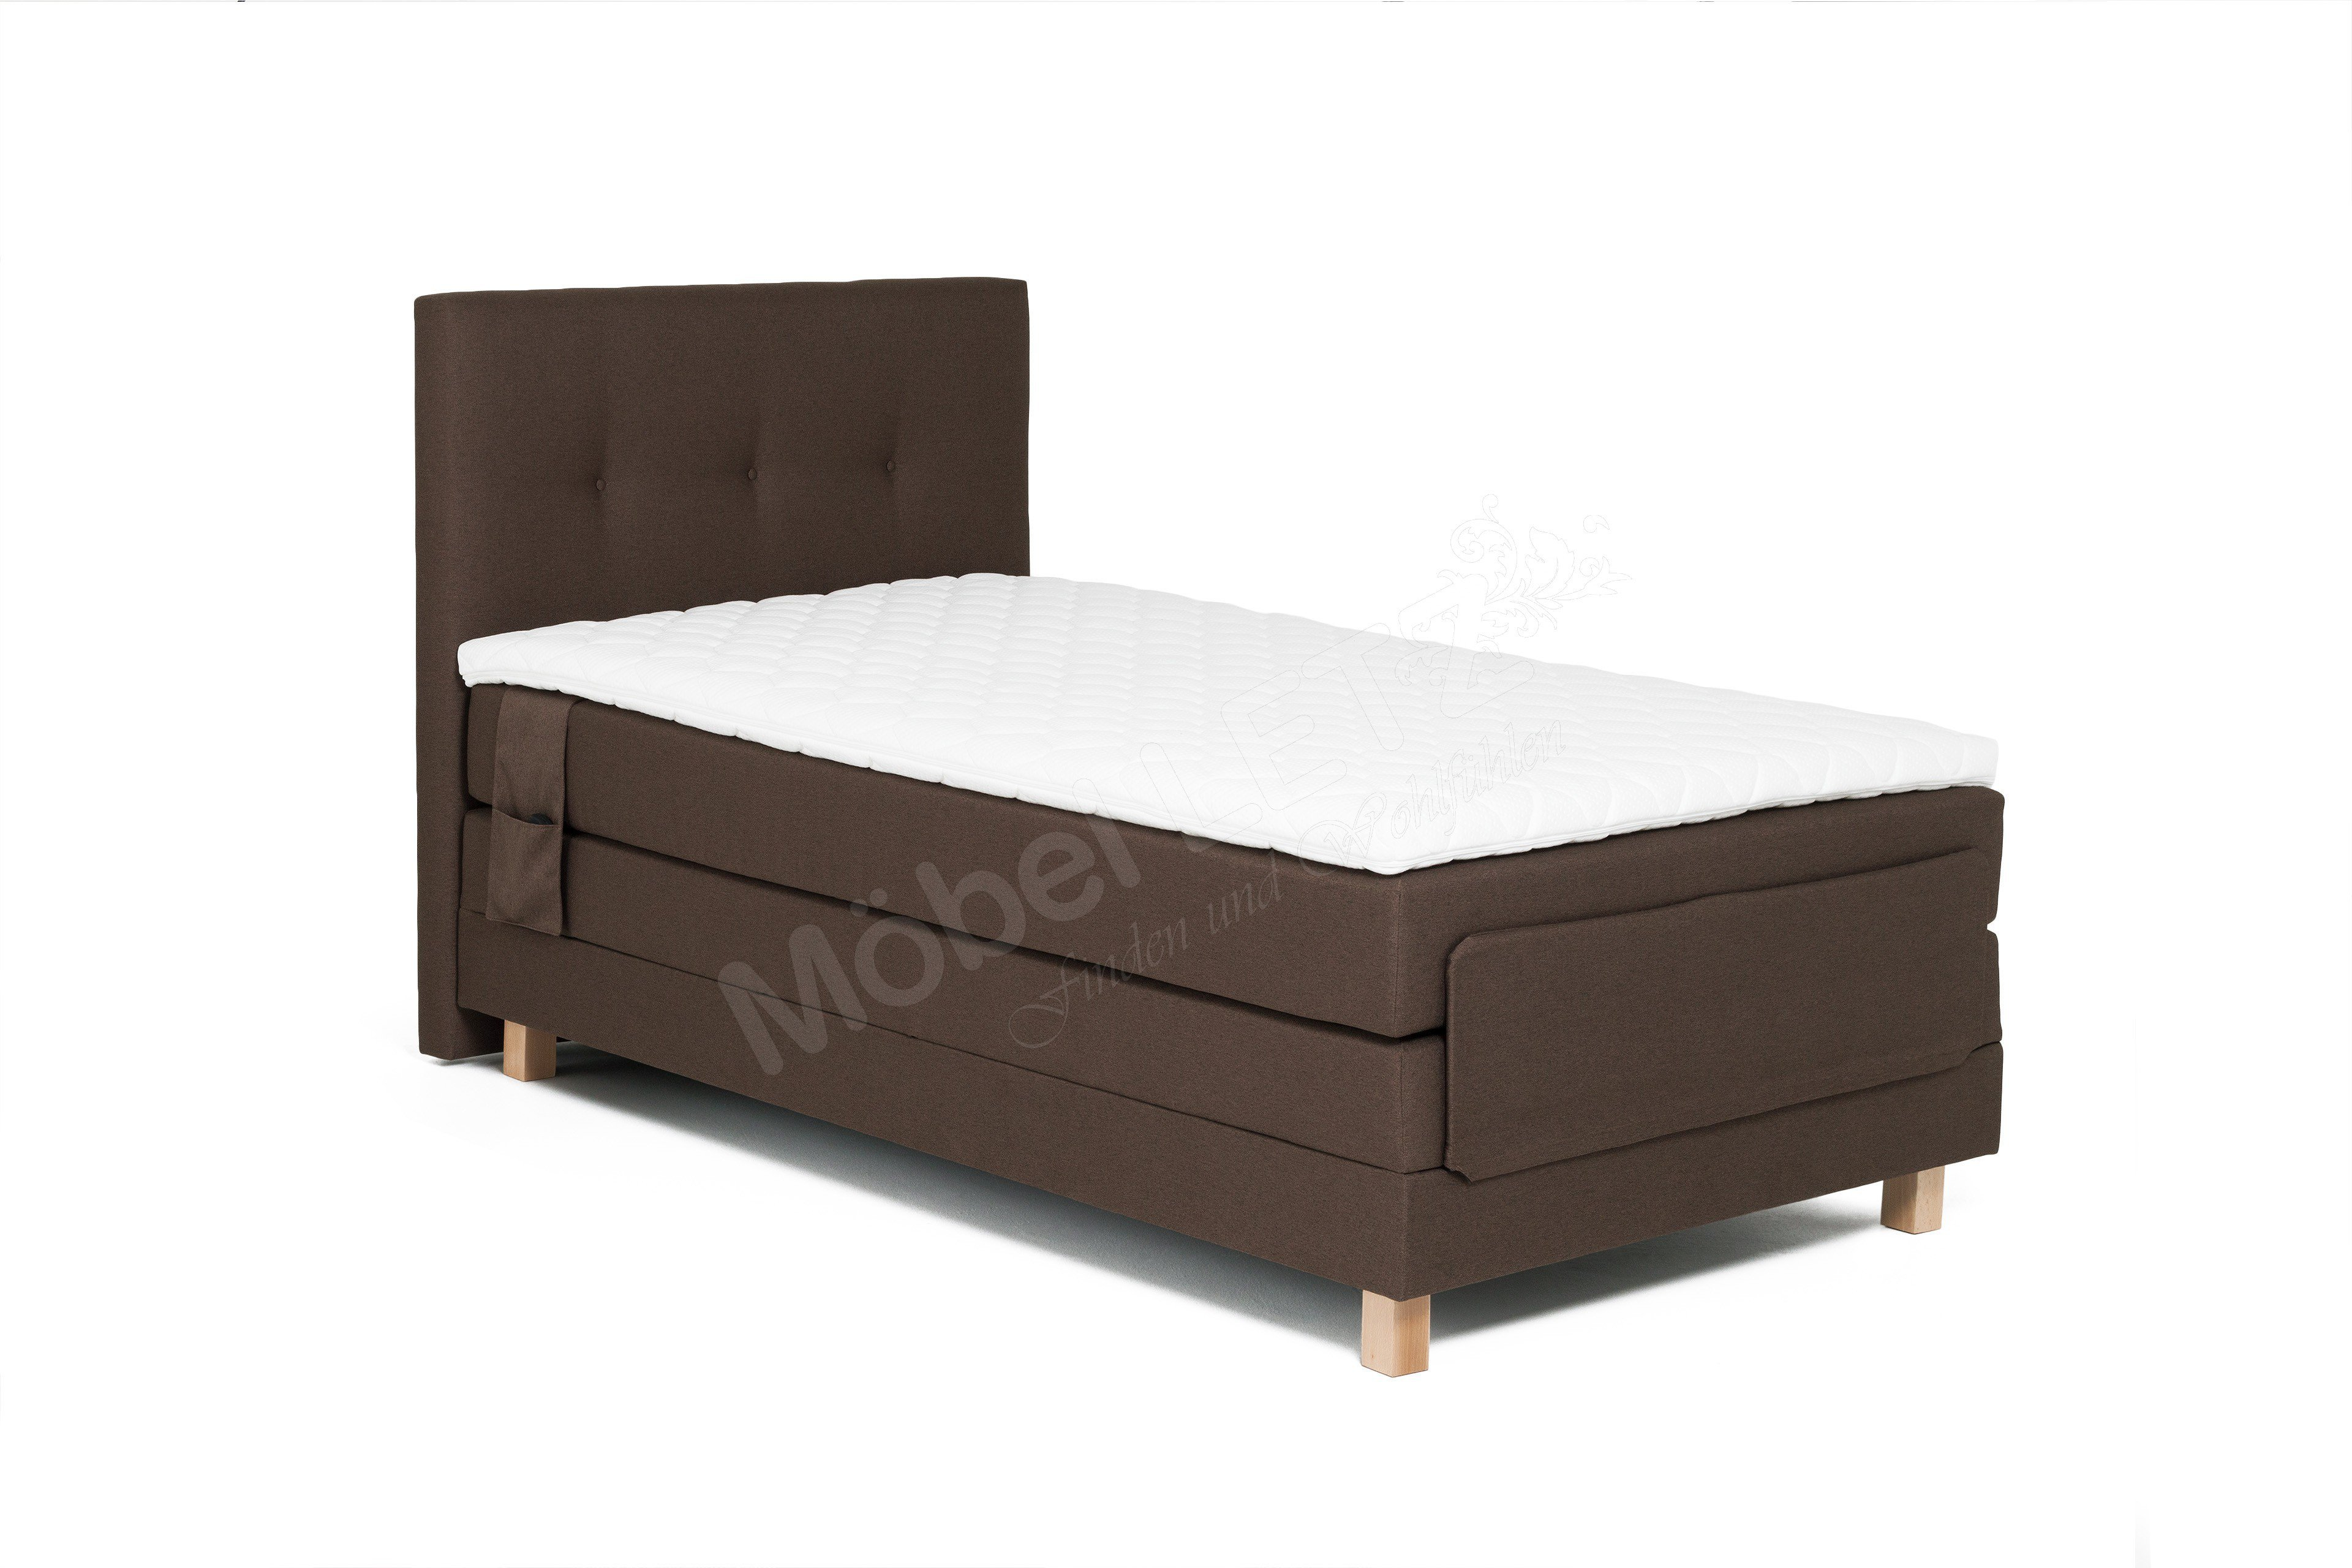 skandinavische m bel boxspringbett jensen mit motor m bel letz ihr online shop. Black Bedroom Furniture Sets. Home Design Ideas